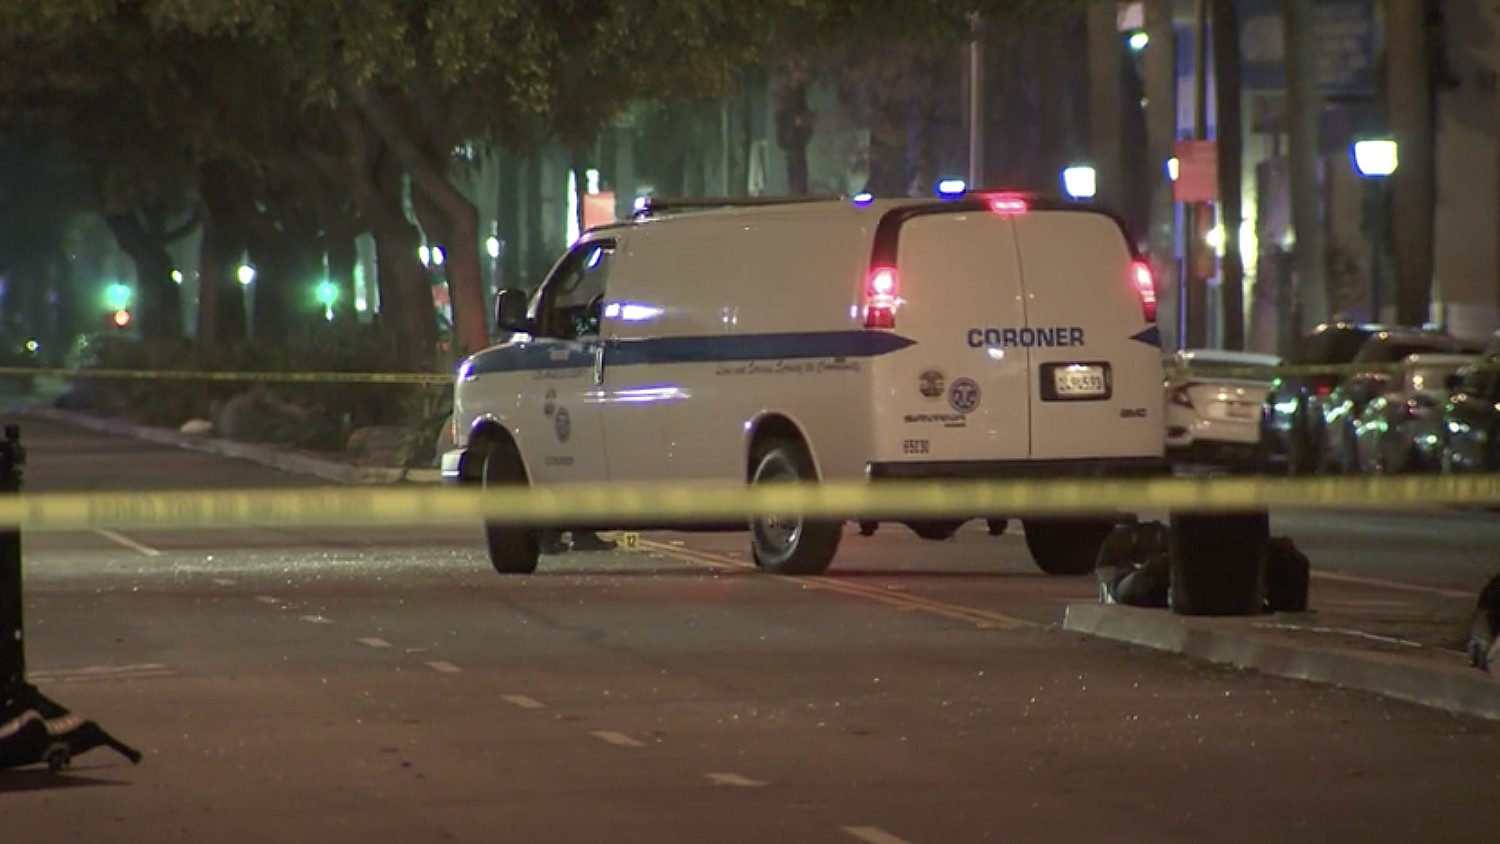 A coroner's van at the scene of a fatal hit-and-run crash that occurred on Nov. 26, 2020. (KTLA)